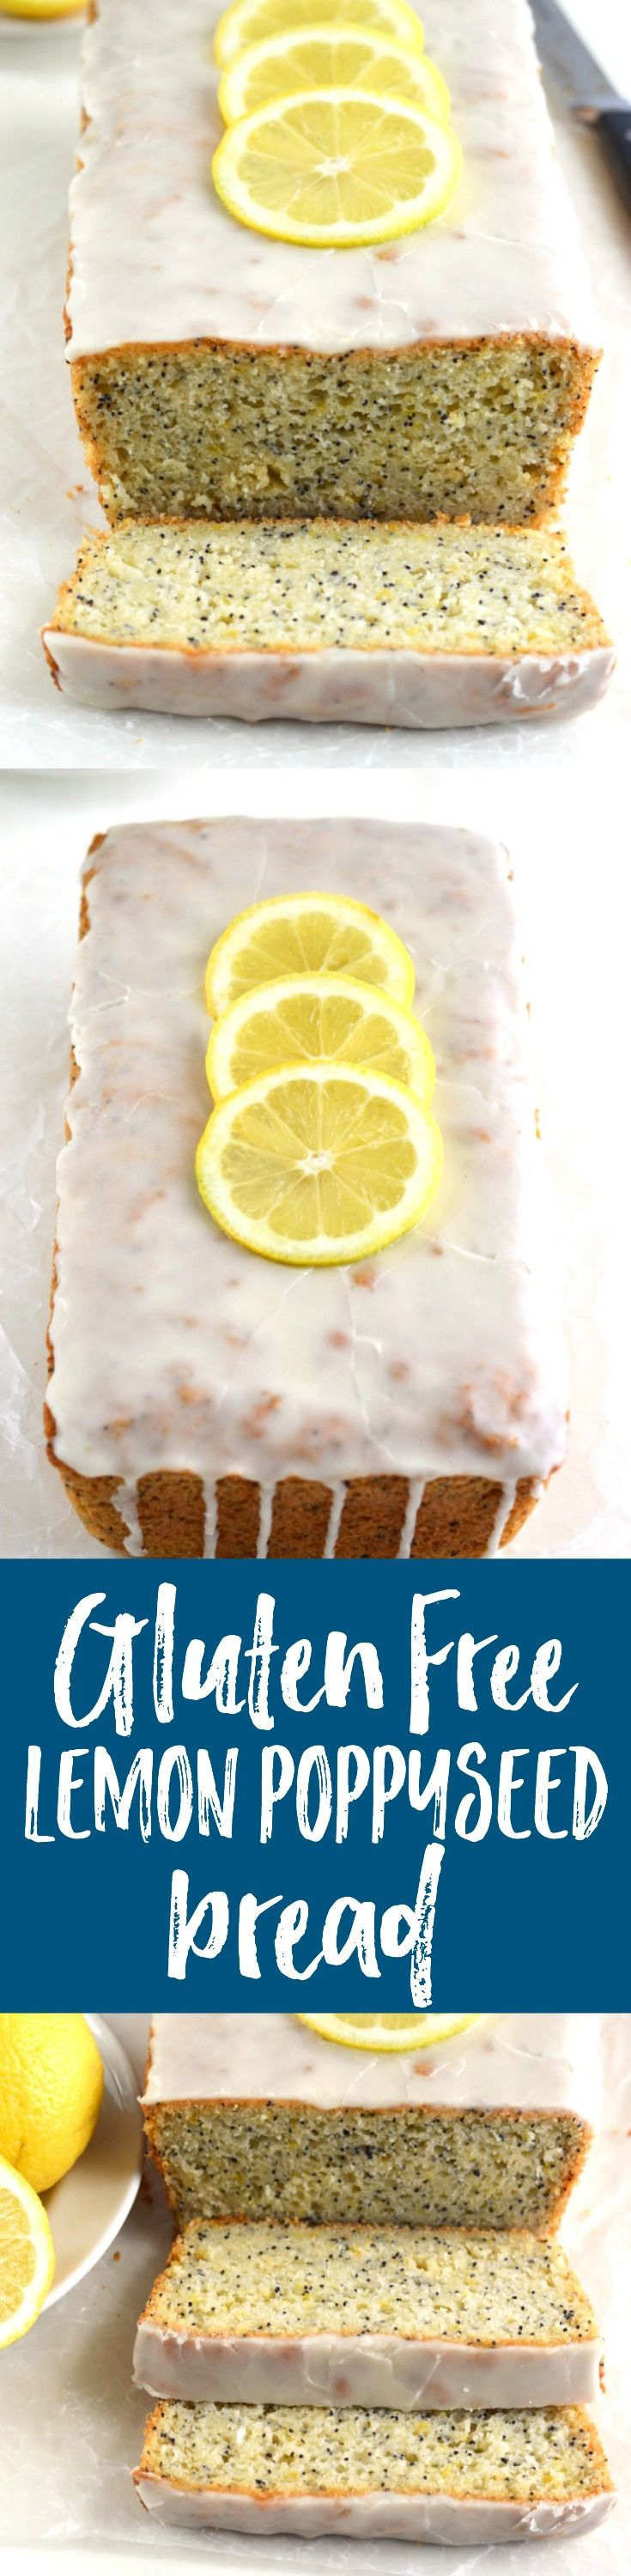 This gluten free lemon poppyseed bread tastes like spring. It's bright, fresh, and has the most amazing lemon glaze. It's also dairy free but can be made with regular milk instead. From What The Fork Food Blog | whattheforkfoodblog.com